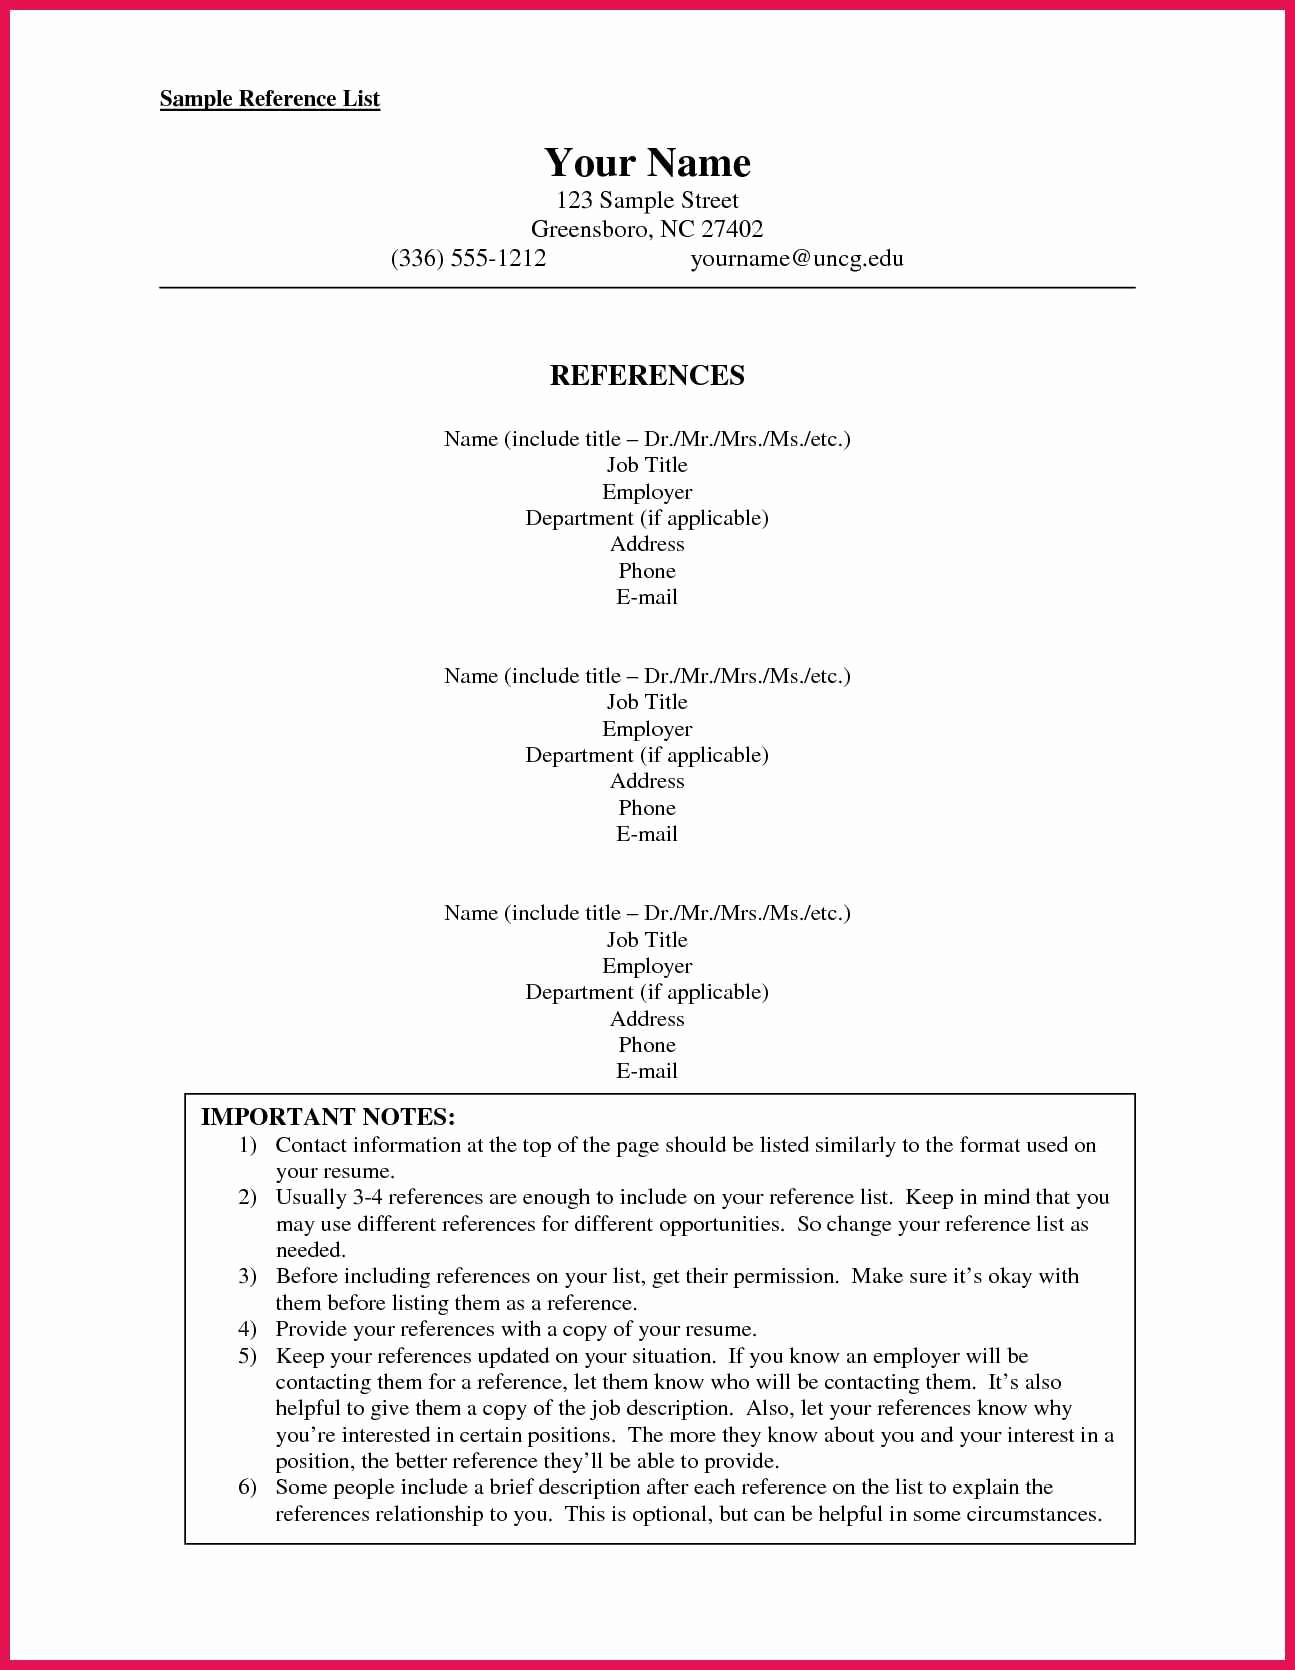 Reference Page Layout for Resume Luxury How to format A Reference List